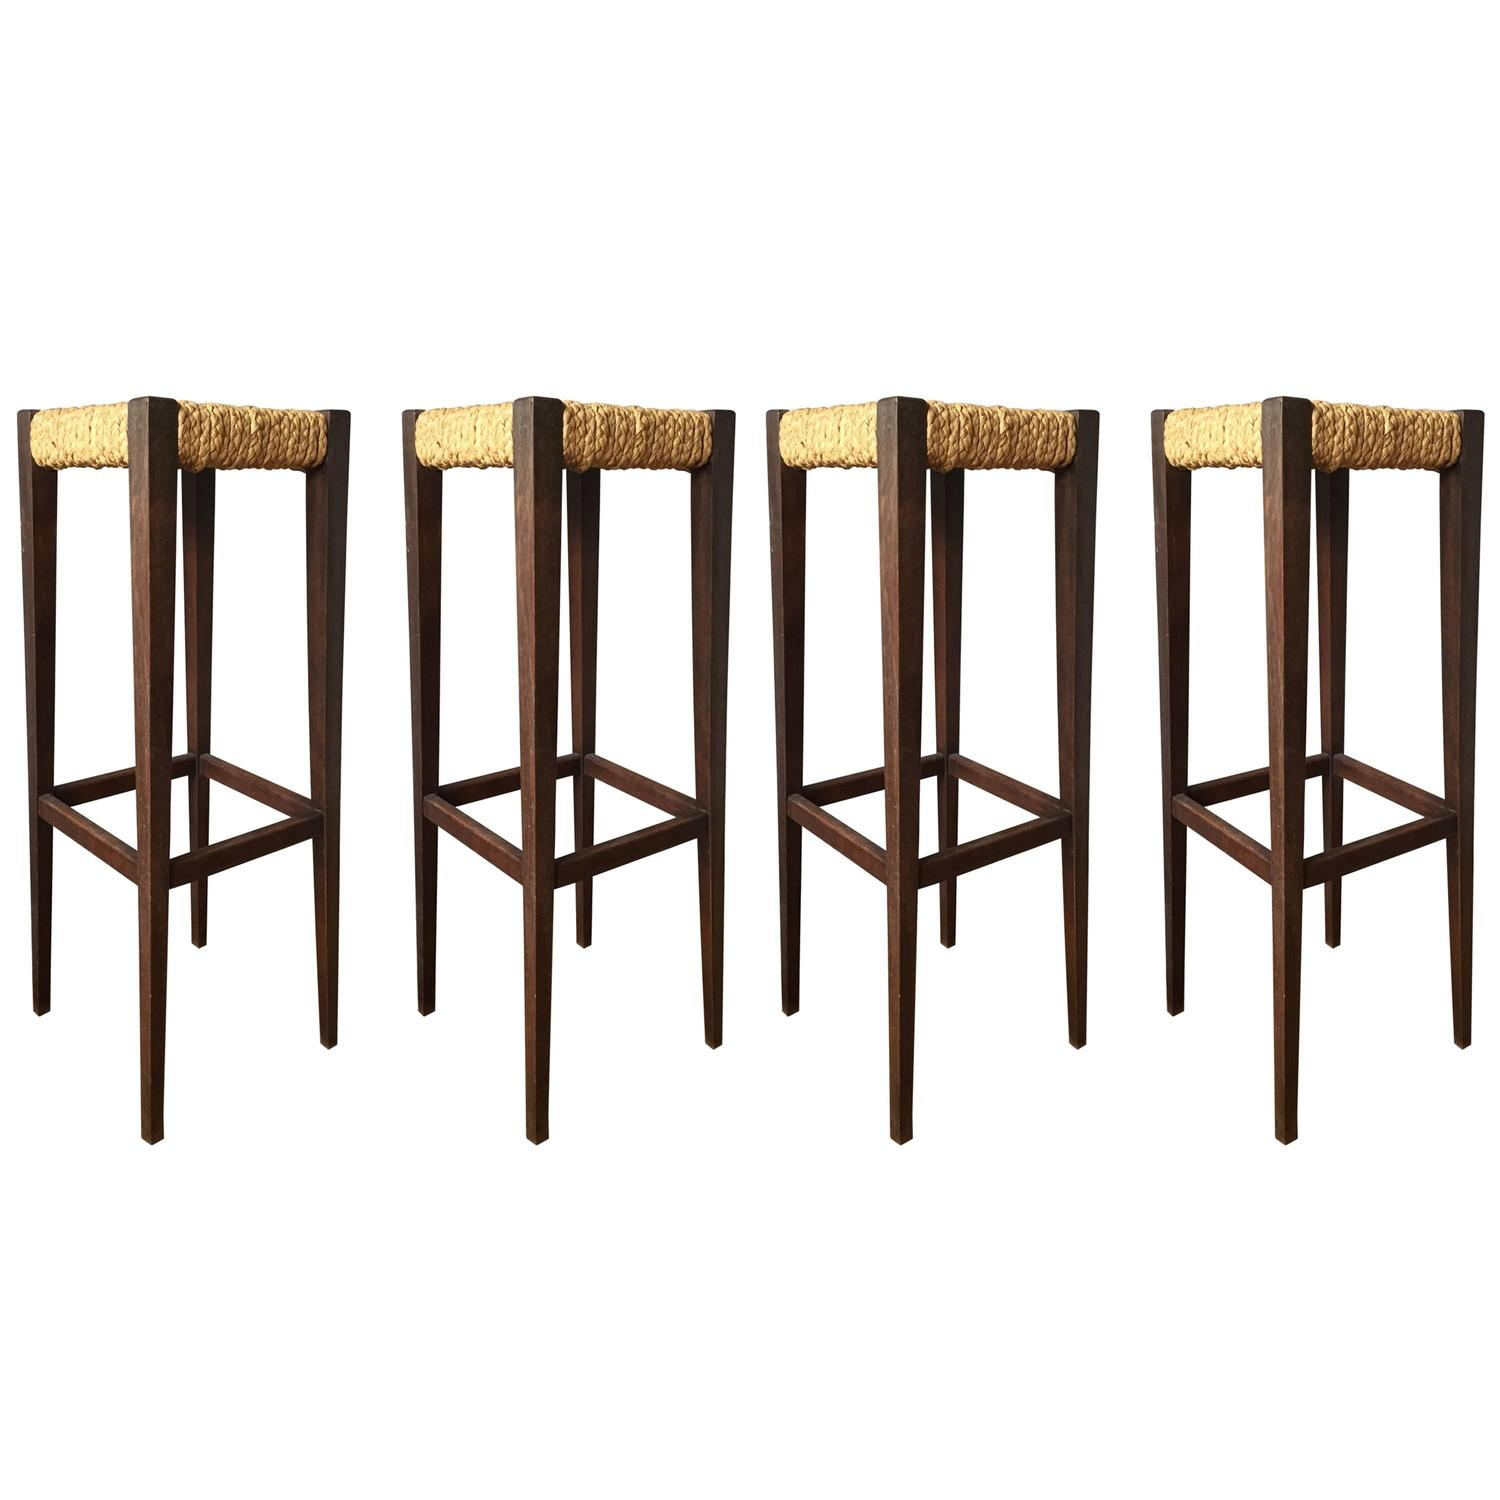 Rare Set Of Four 1950s Woven Abaca Seat Bar Stools By